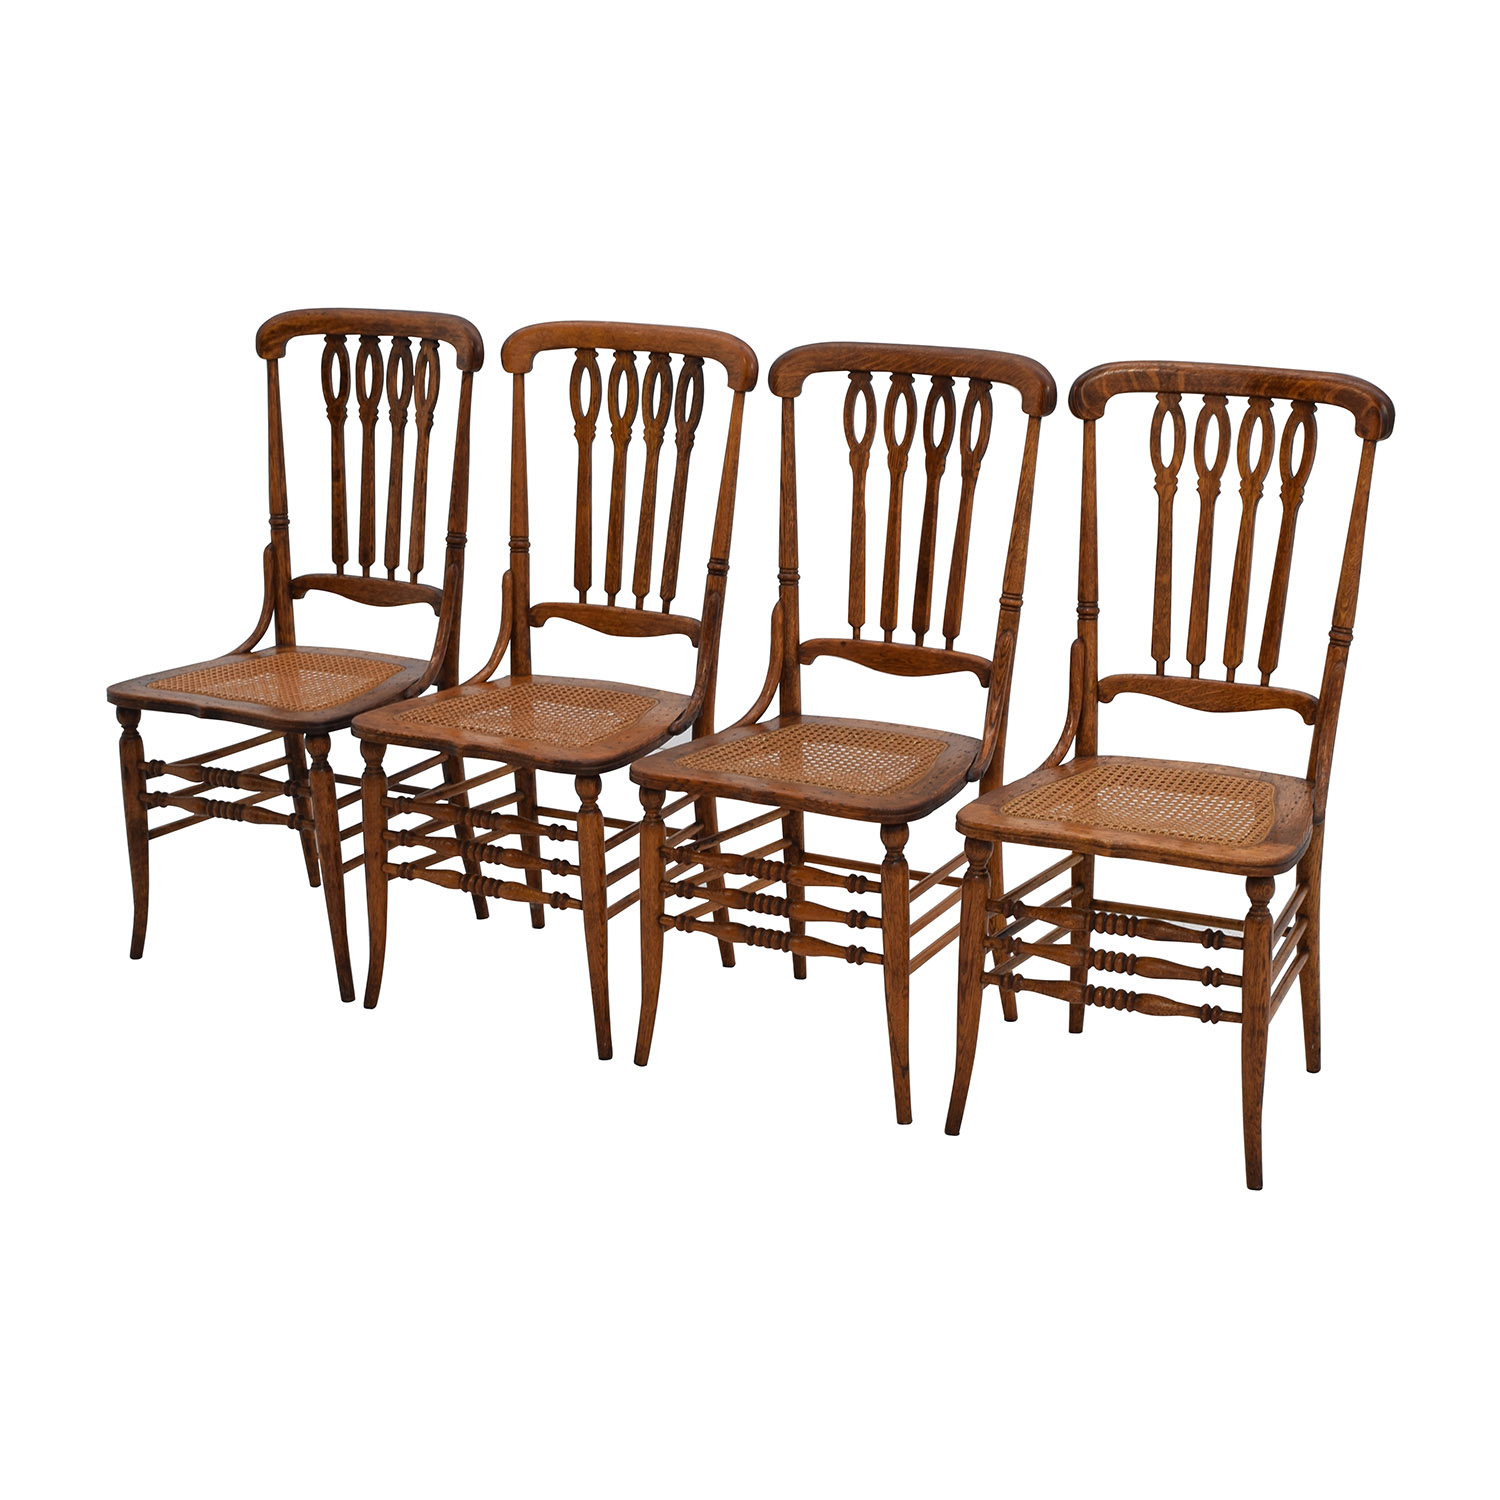 Cane Dining Chairs 52 Off Antique Cane Weaved Wood Dining Chairs Chairs